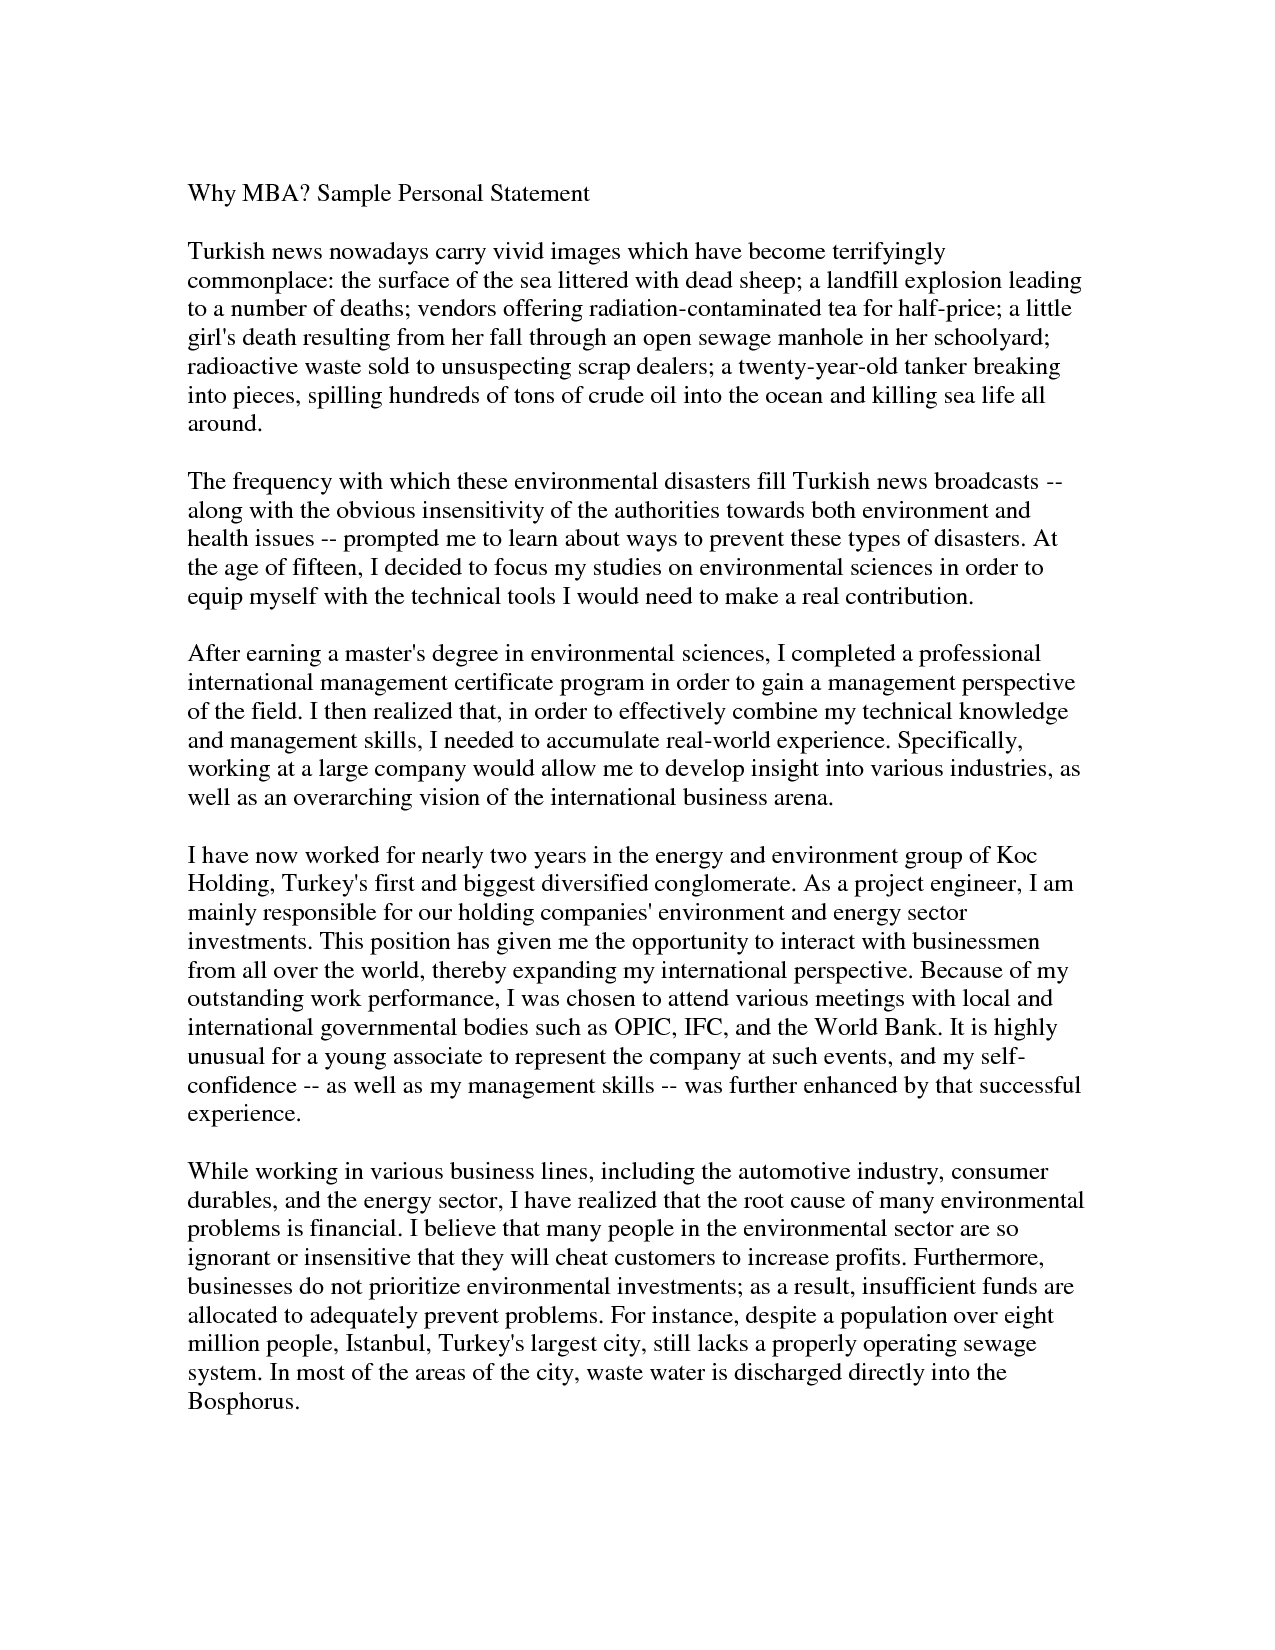 business school essays leadership